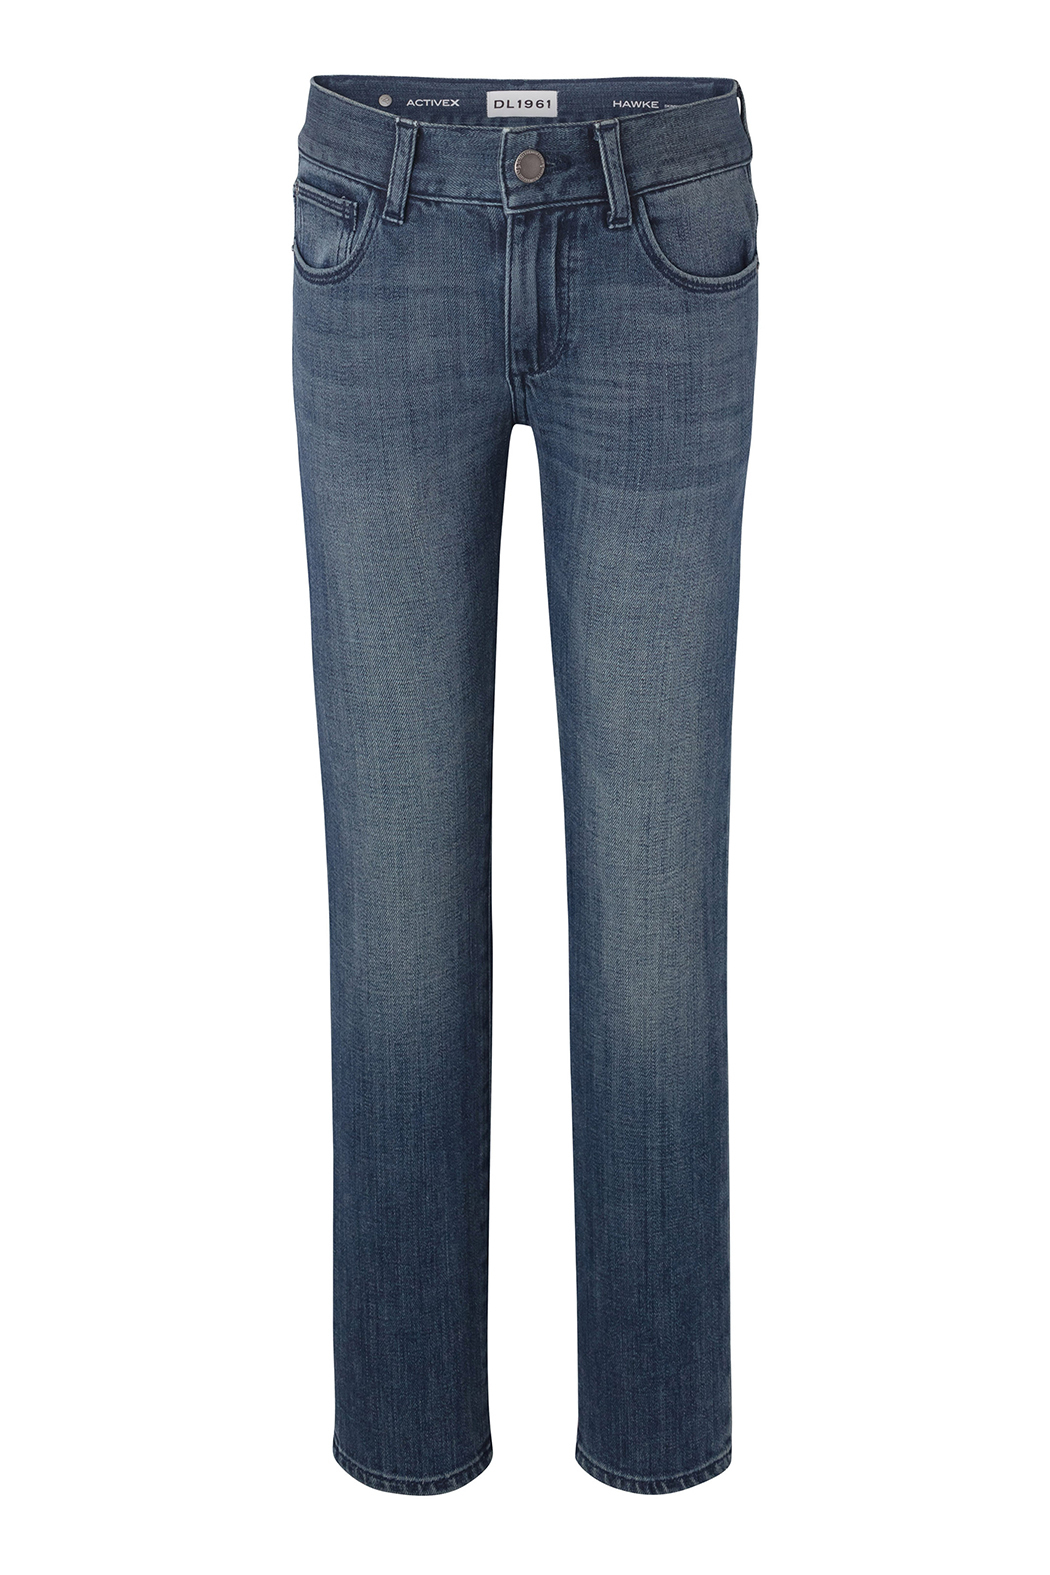 DL1961 Hawke Skinny Child Jeans Scabbard - Main Image